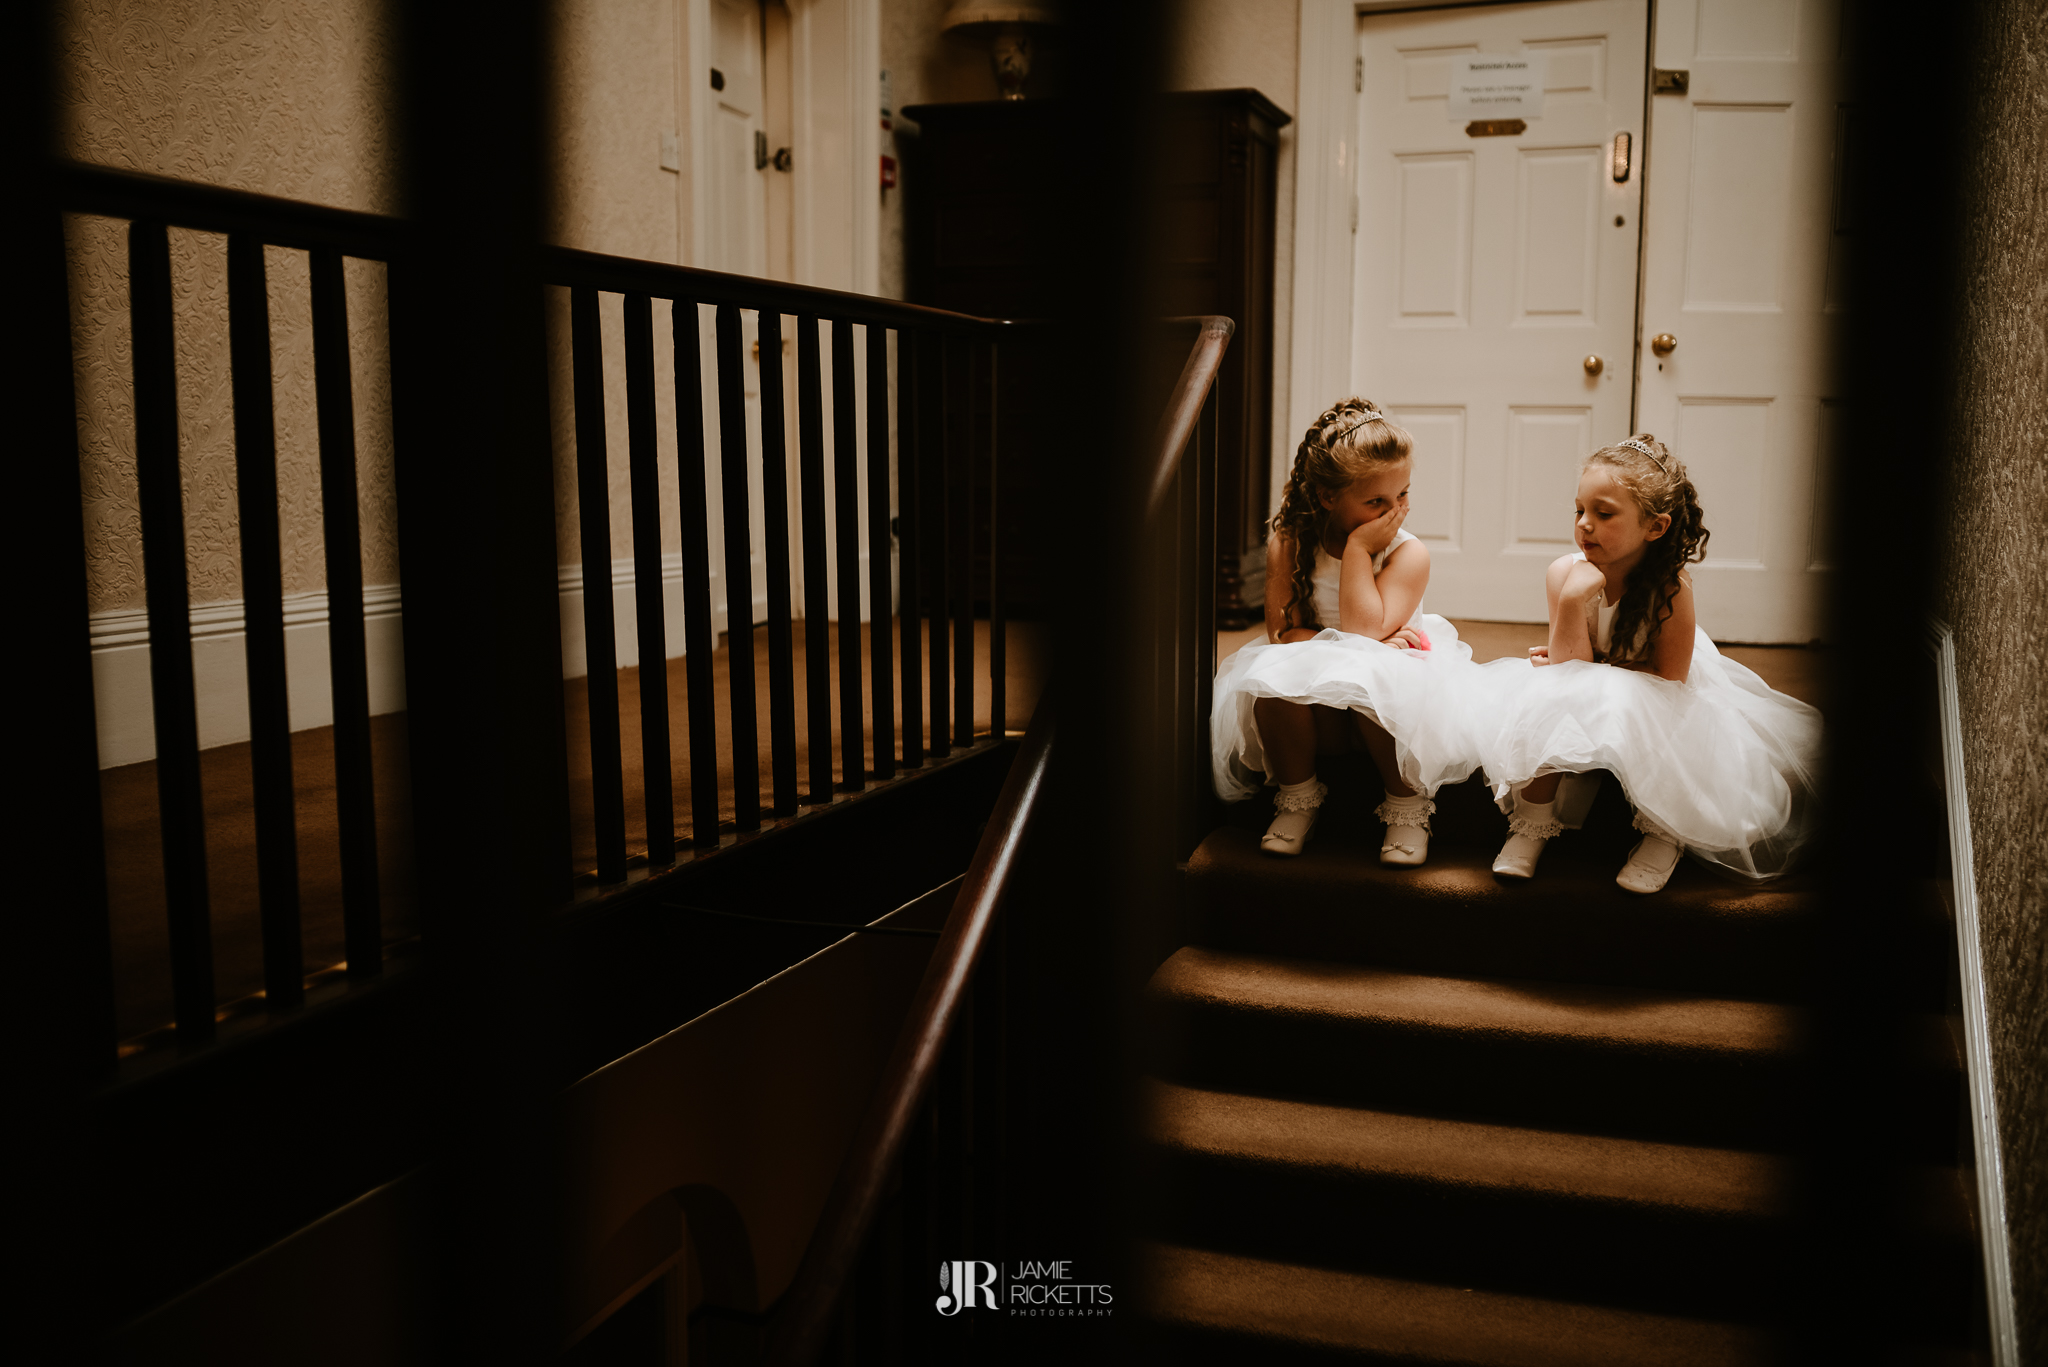 Wroxeter-Hotel-Wedding-Photography-In-Shropshire-By-Shropshire-Wedding-Photographer-Jamie-Ricketts-023.JPG